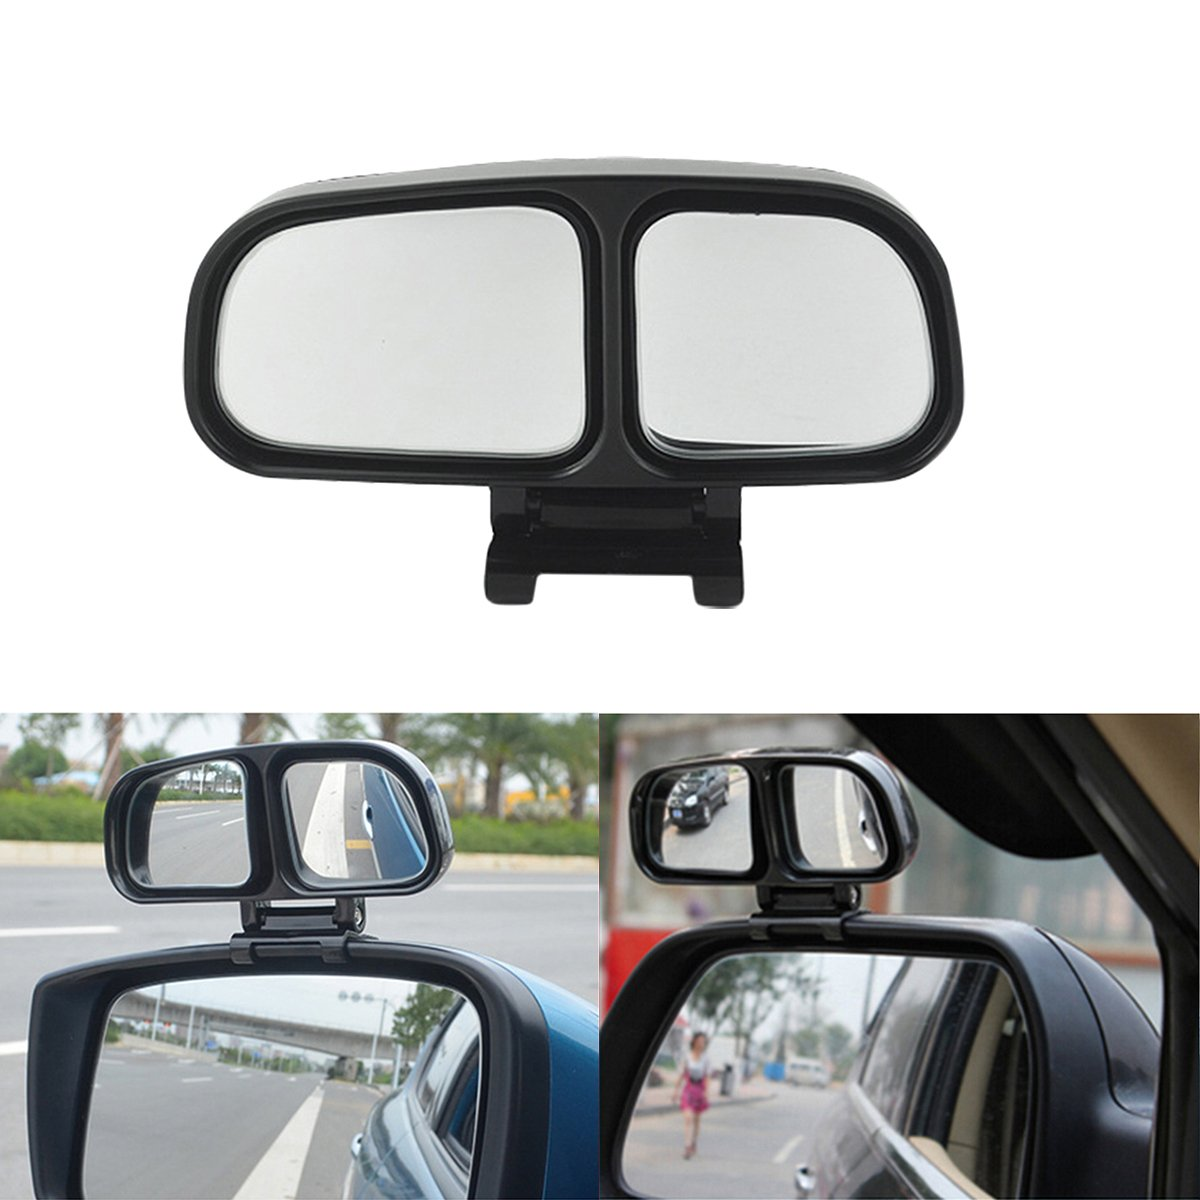 Car Auxiliary Left Chrome Blind Spot Mirror, ECLEAR Universal Rear Side 360° Wide Angle View Mirrors for Vehicle Suv Truck Motorcycle Fit Stick-on Design 1 Piece,Black